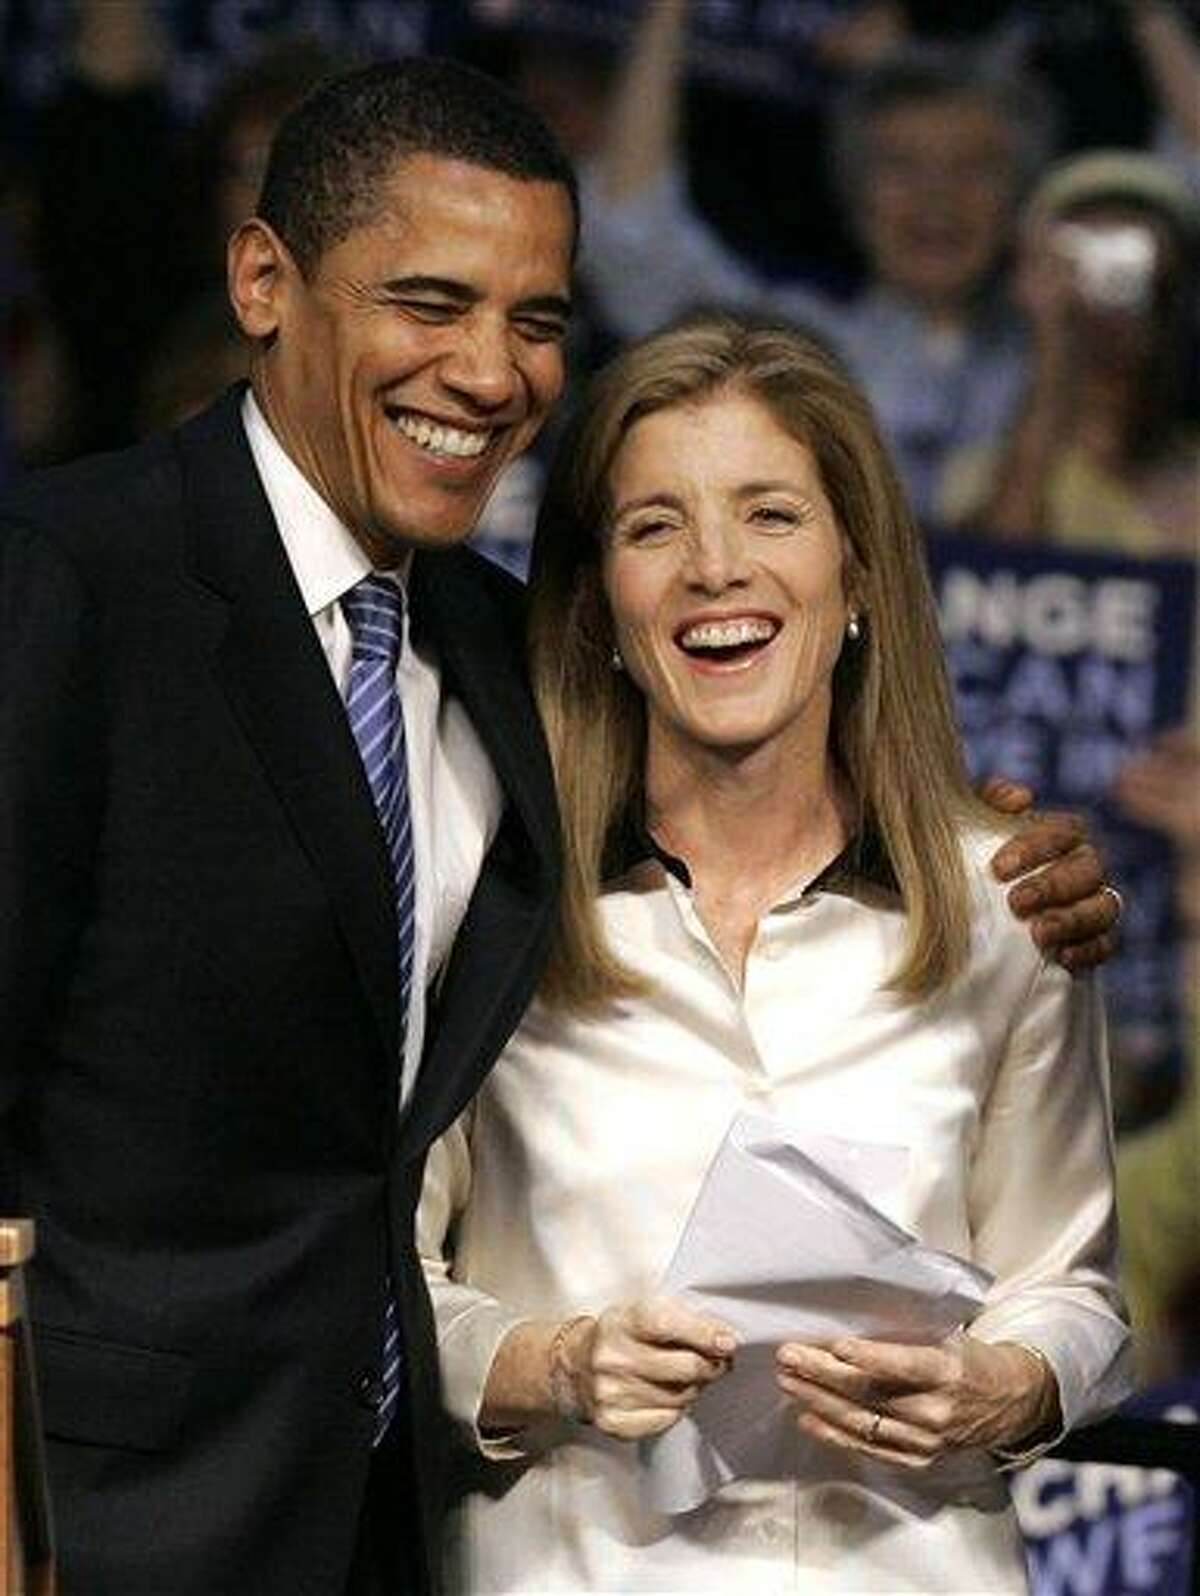 In this April 20, 2008 file photo, then-Democratic presidential candidate Sen. Barack Obama, D-Ill. shares a moment with Caroline Kennedy before addressing supporters at a rally in Scranton, Pa. AP sources say Obama is nominating Kennedy as ambassador to Japan. (AP Photo/Charles Rex Arbogast, File)